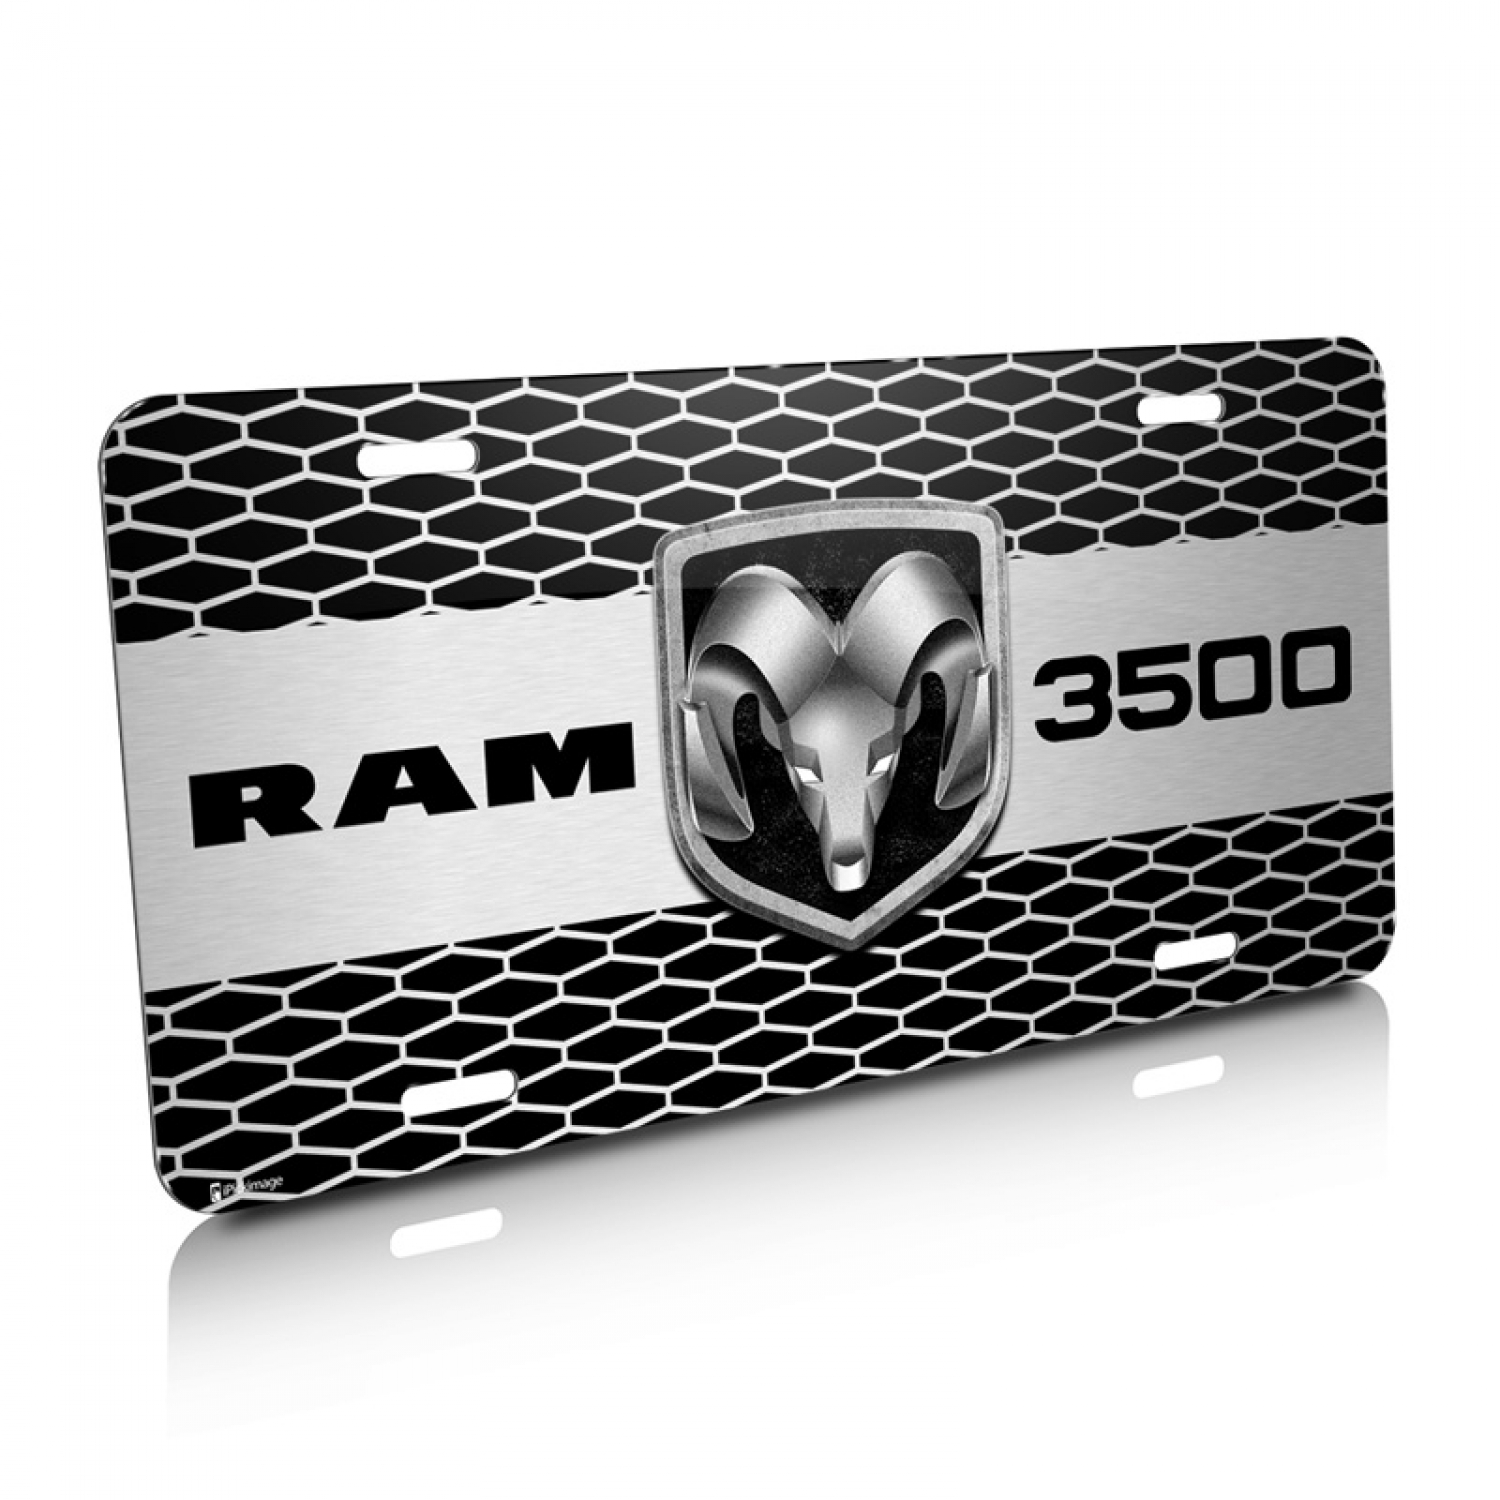 RAM 3500 Truck Grill Graphic Aluminum License Plate